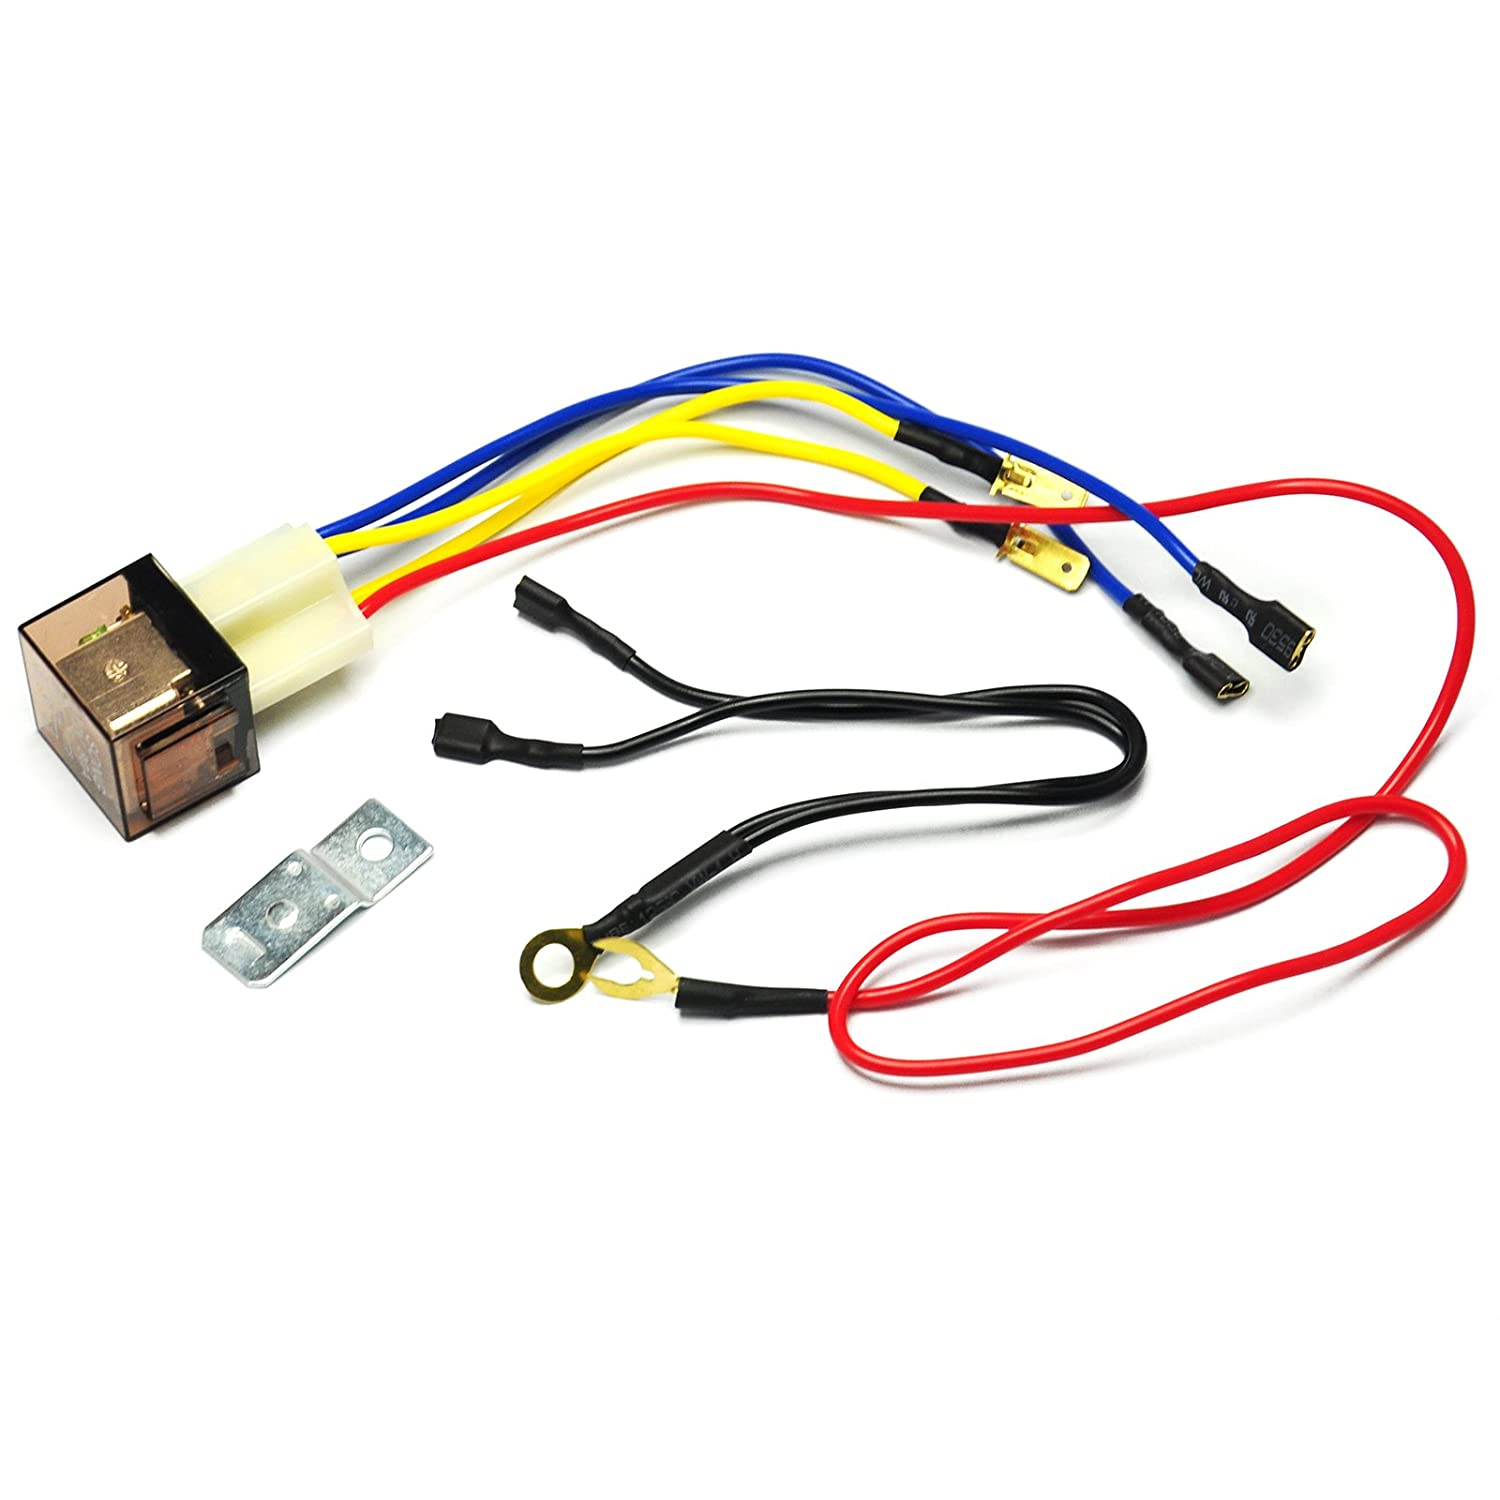 A9l Wiring Harness For Diy | Wiring Diagram on